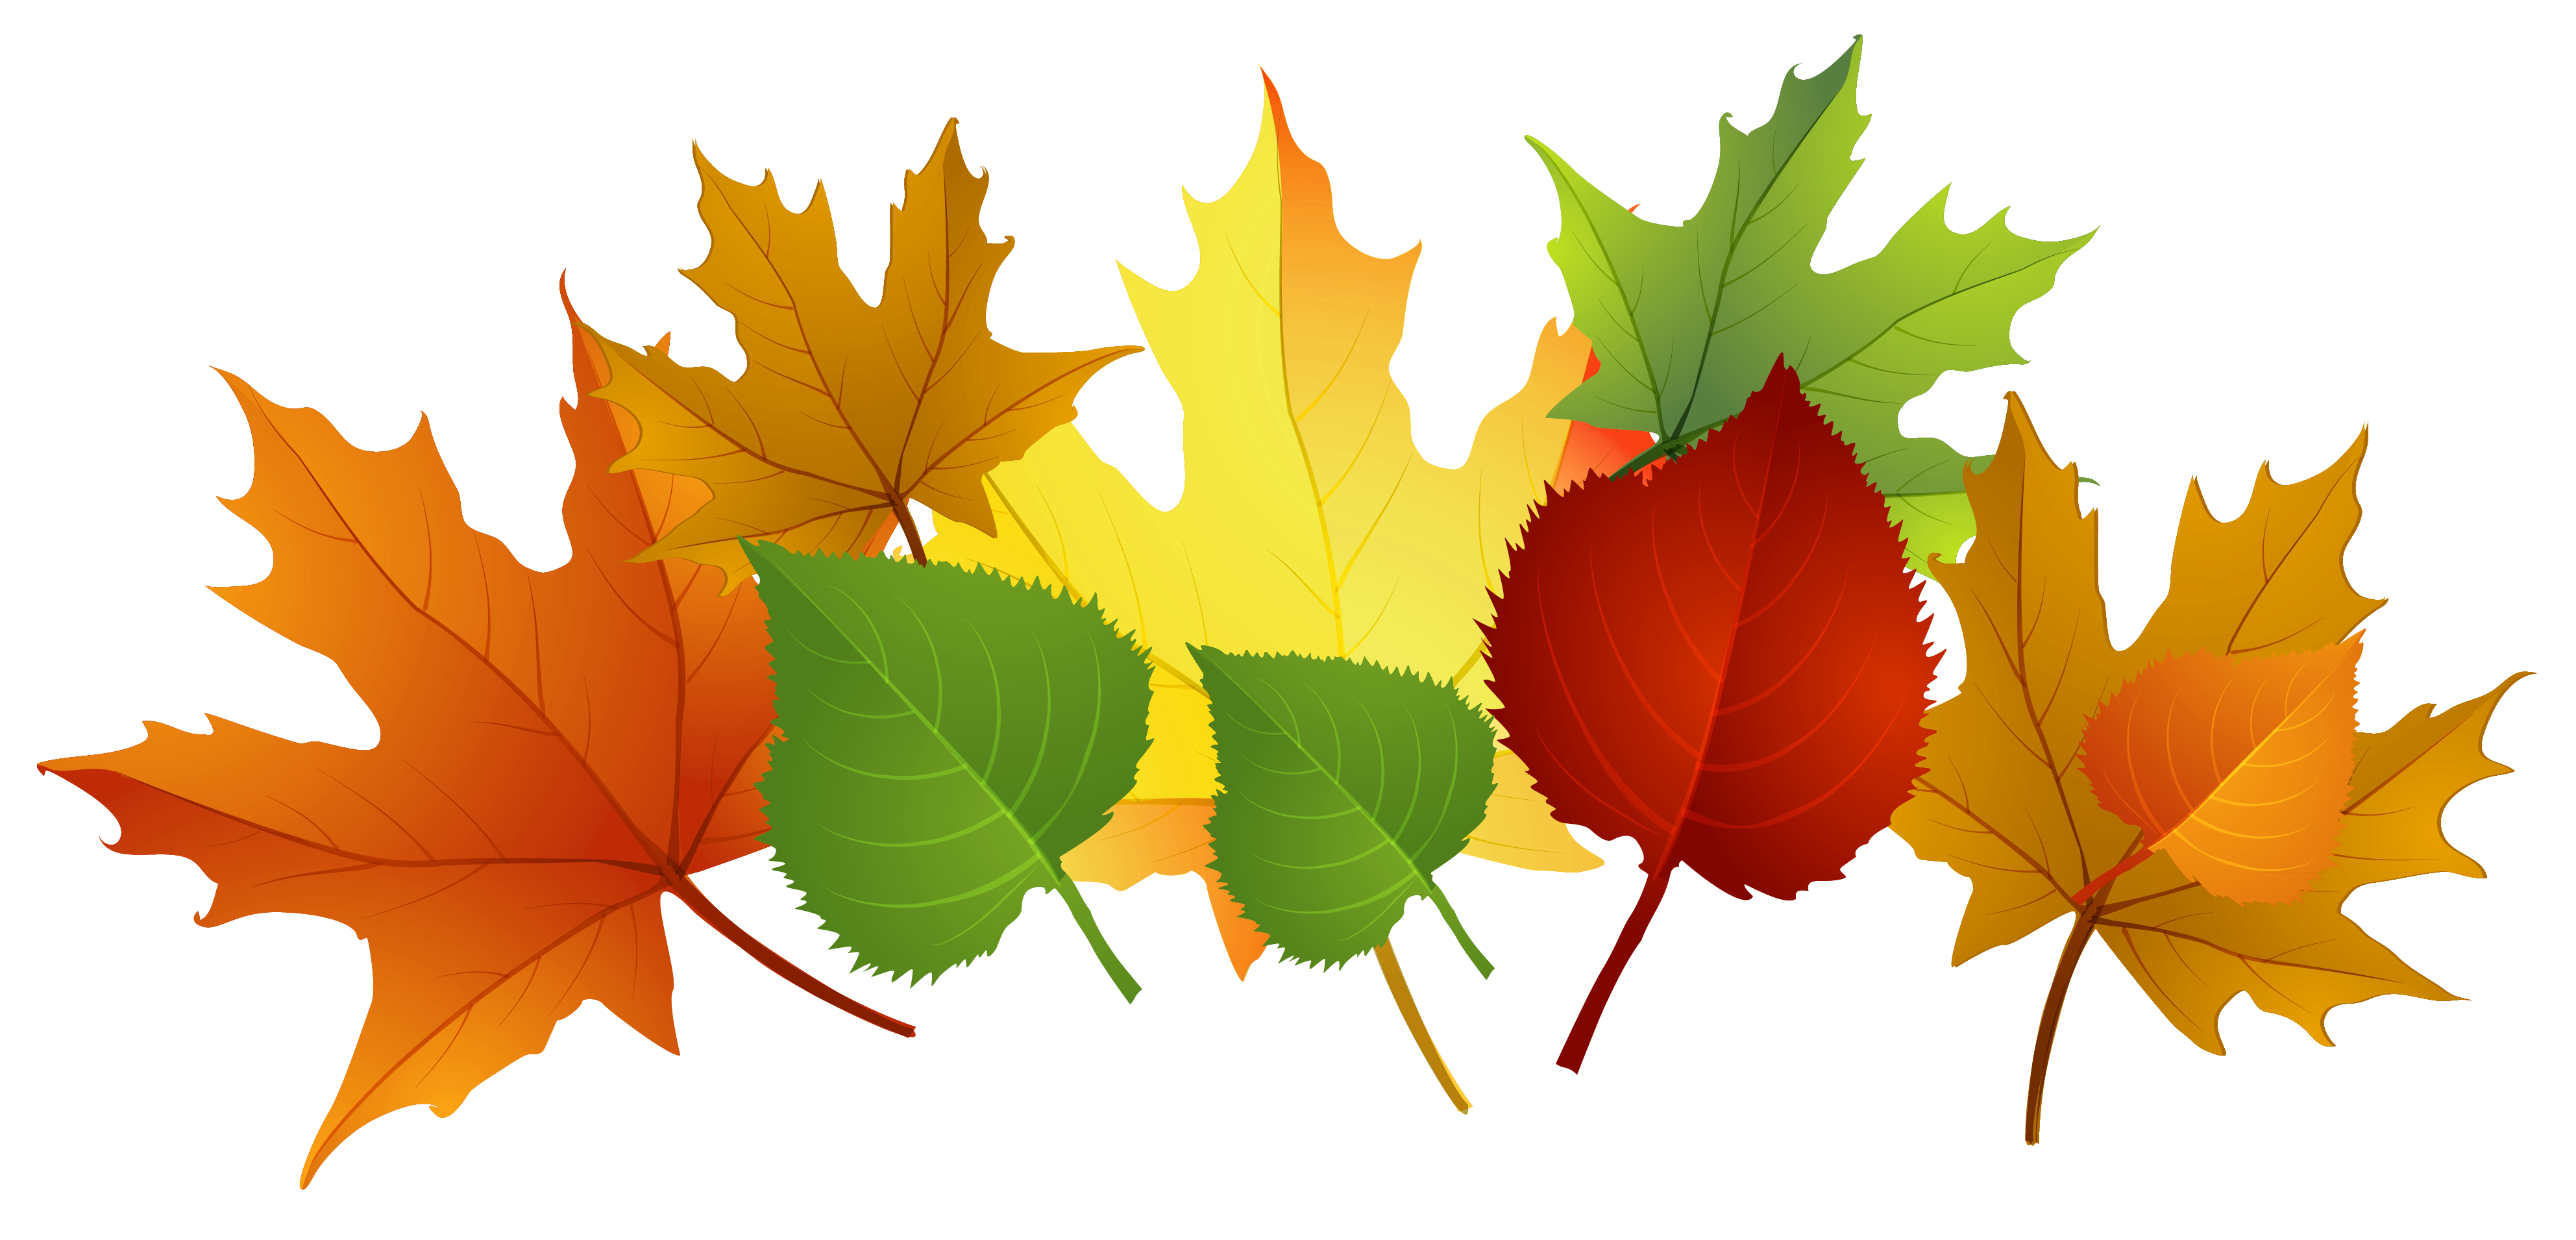 Clipart images of fall leaves picture transparent stock Free Fall Family Cliparts, Download Free Clip Art, Free Clip Art on ... picture transparent stock